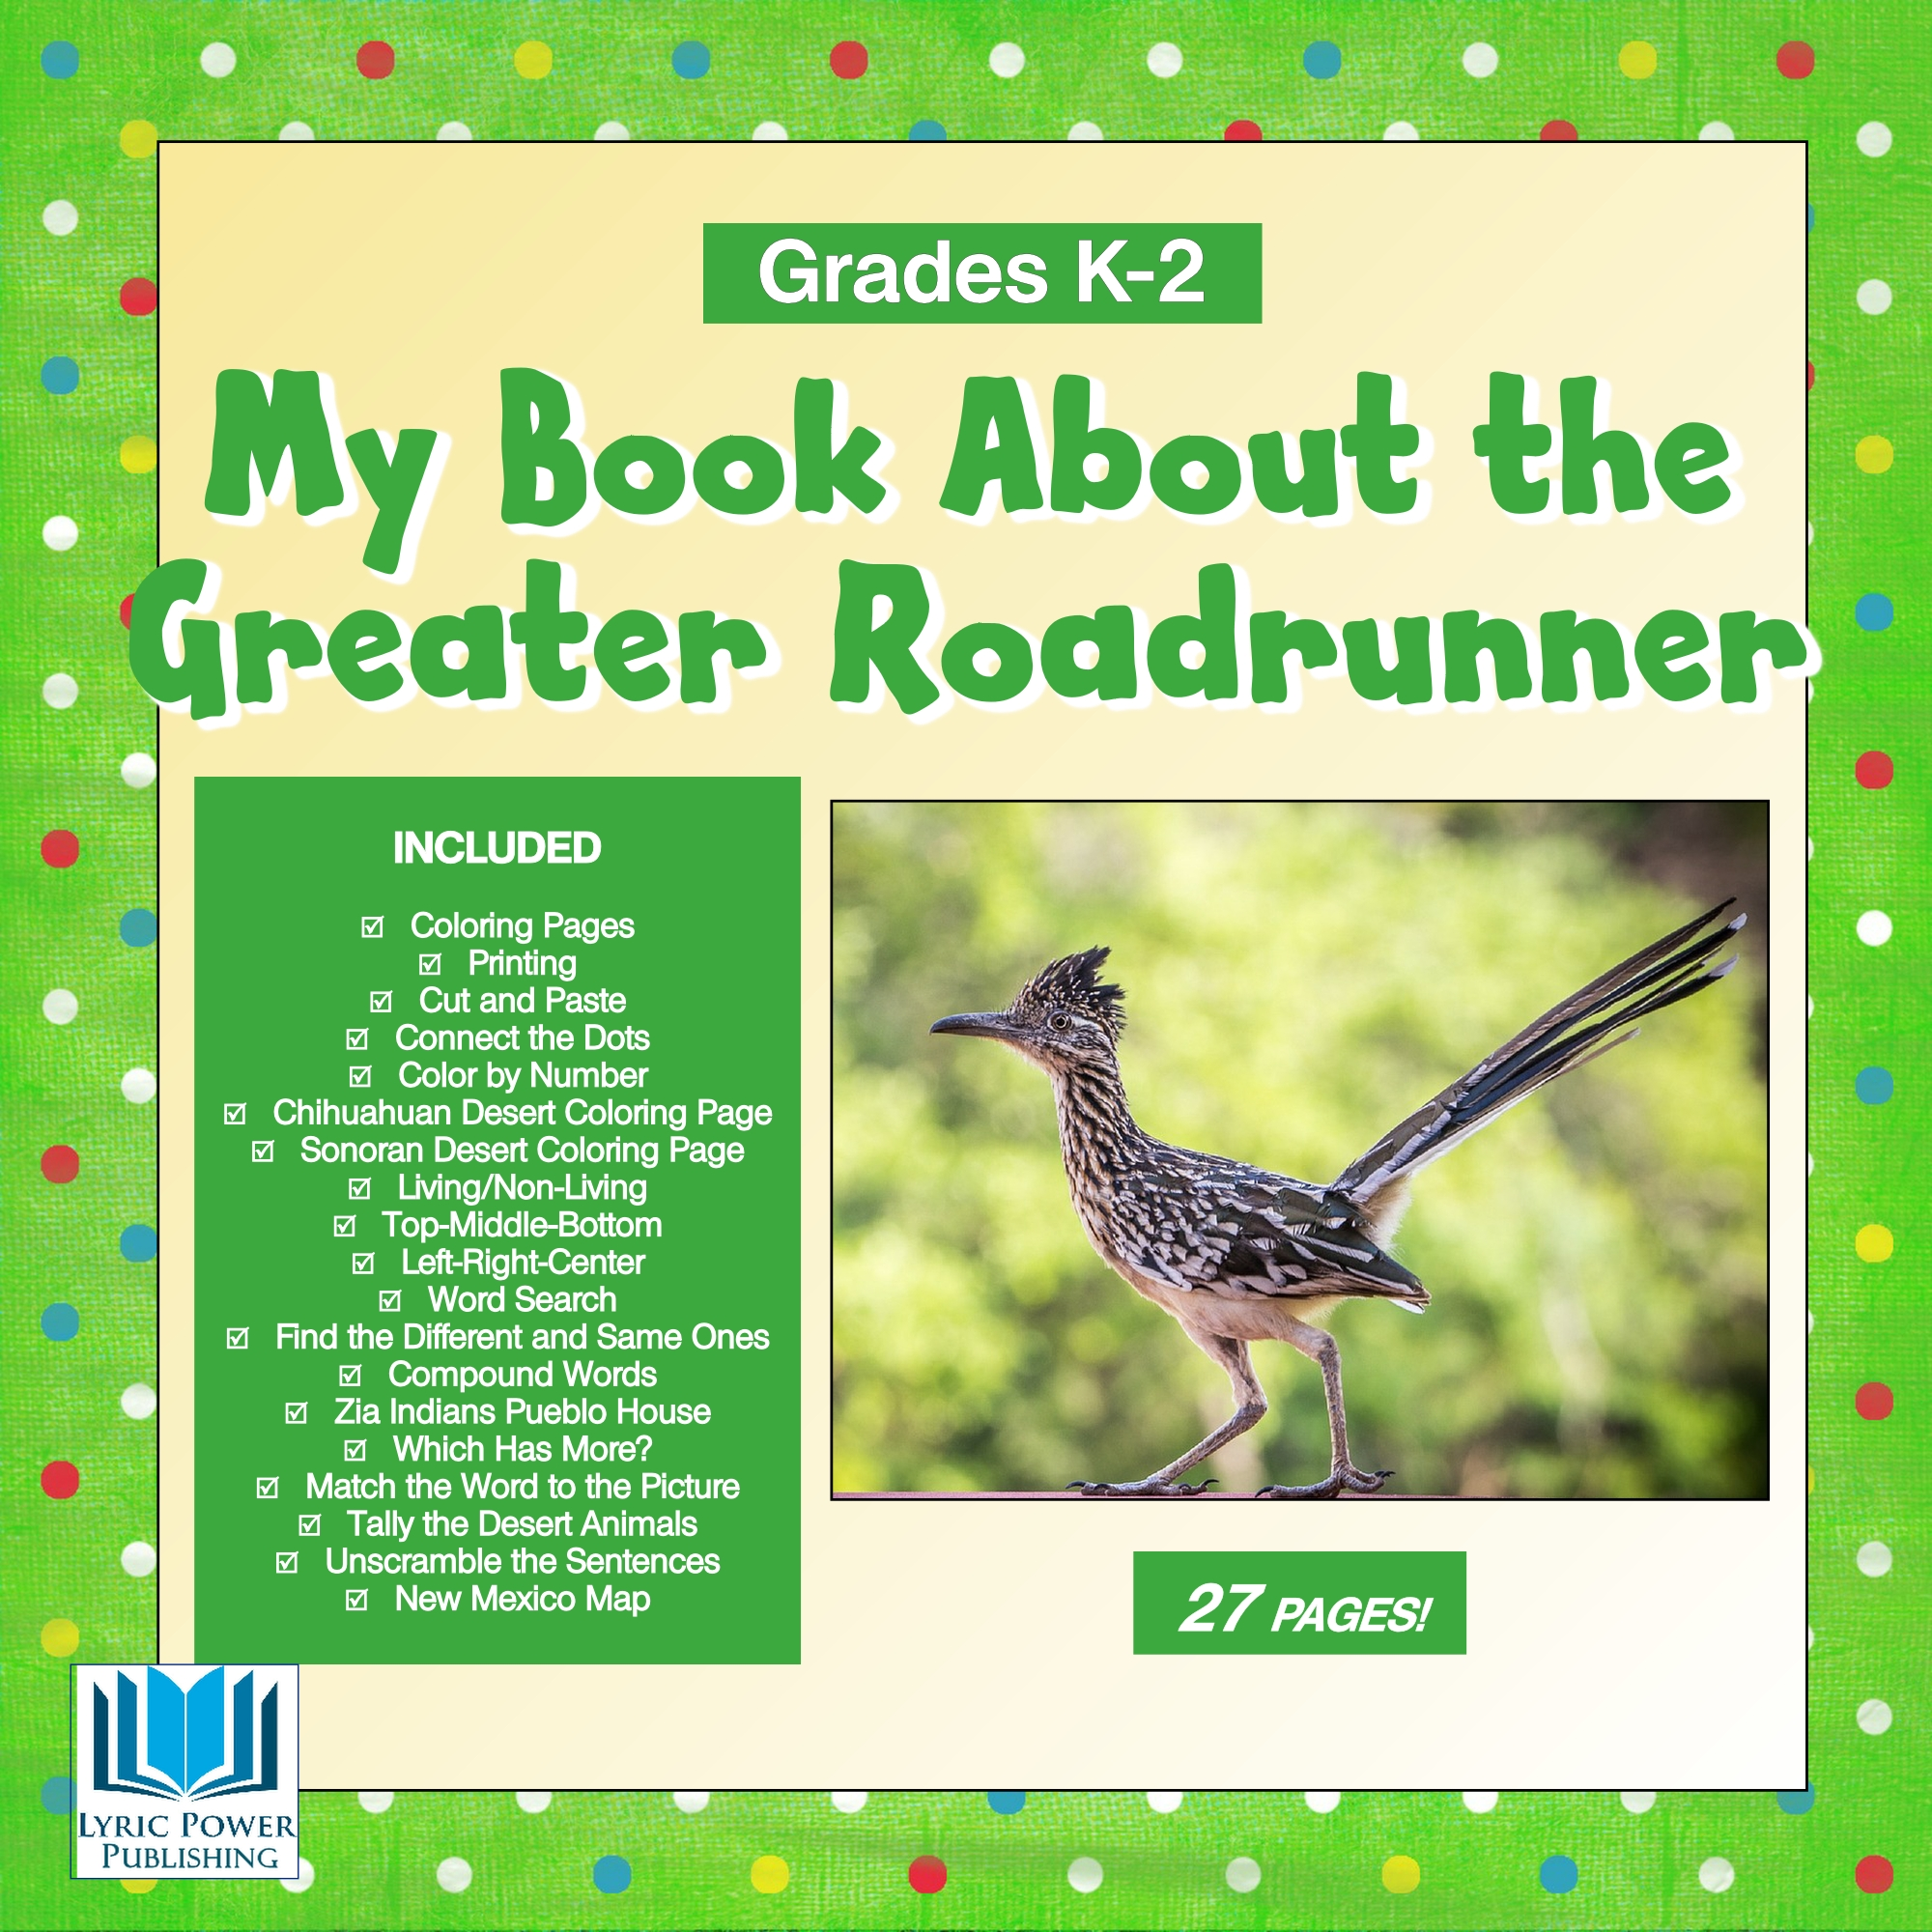 A green and yellow book cover with image of Greater Roadrunner